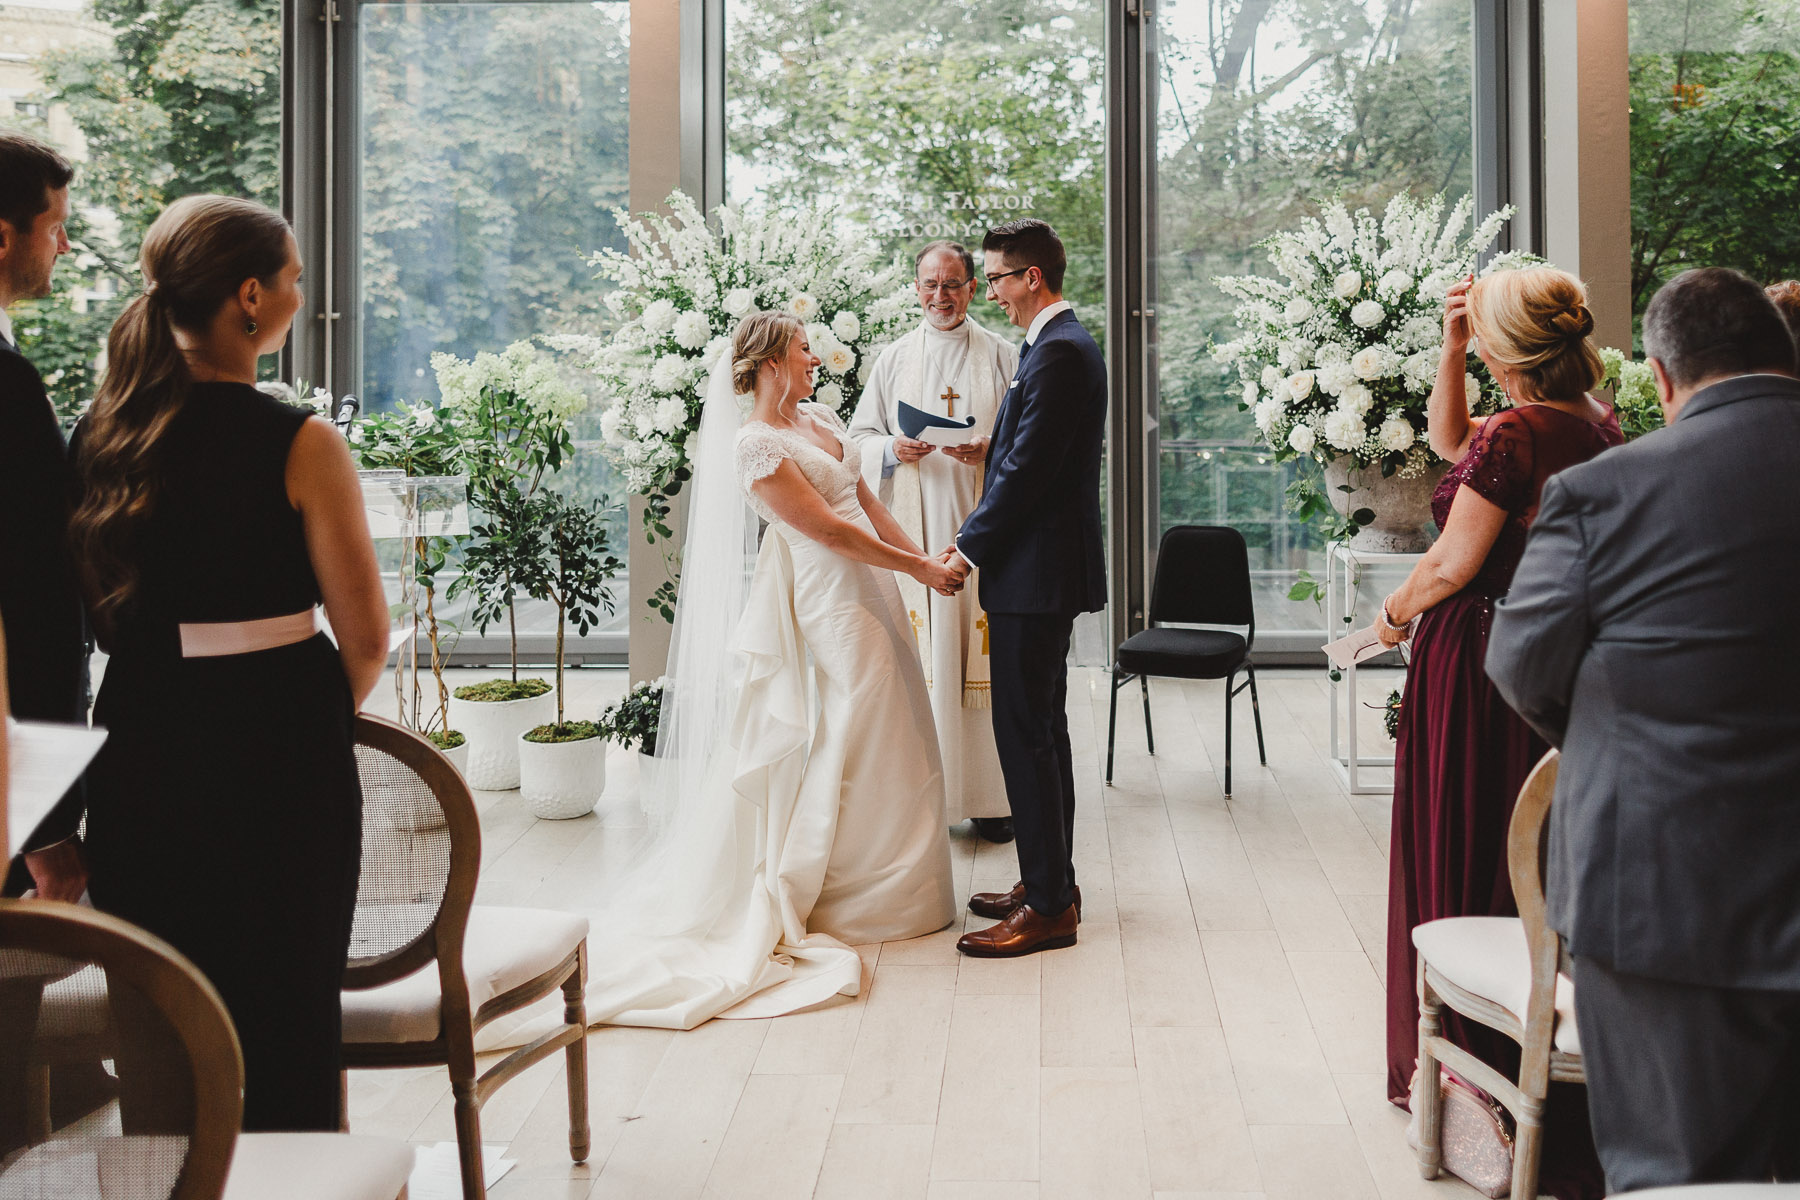 Royal Conservatory Of Music Wedding Pictures by Avangard Photography